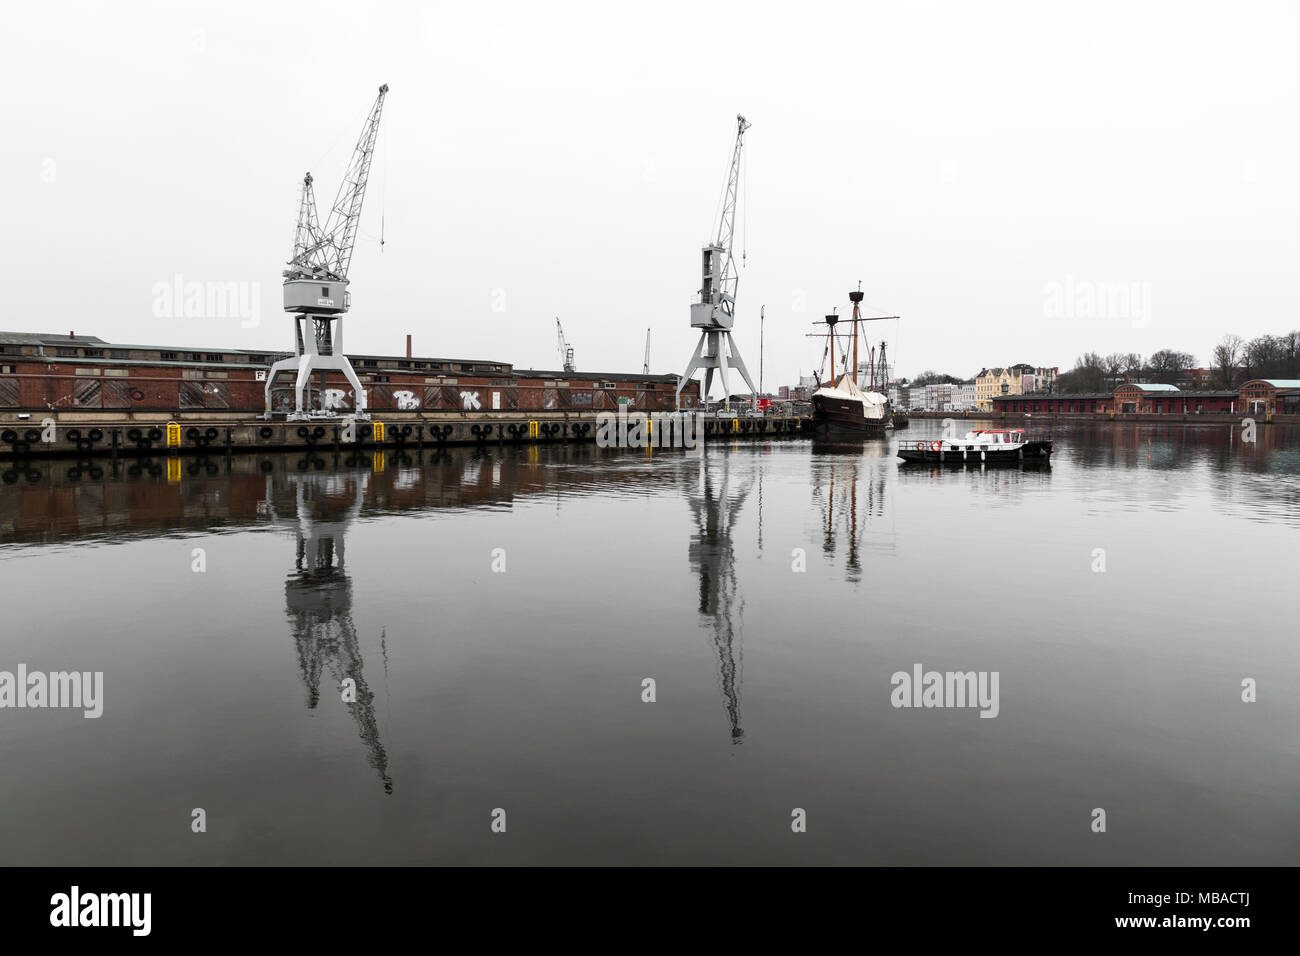 Lubeck, Germany. Boat and cranes at the harbor in the river Trave in Lubeck - Stock Image